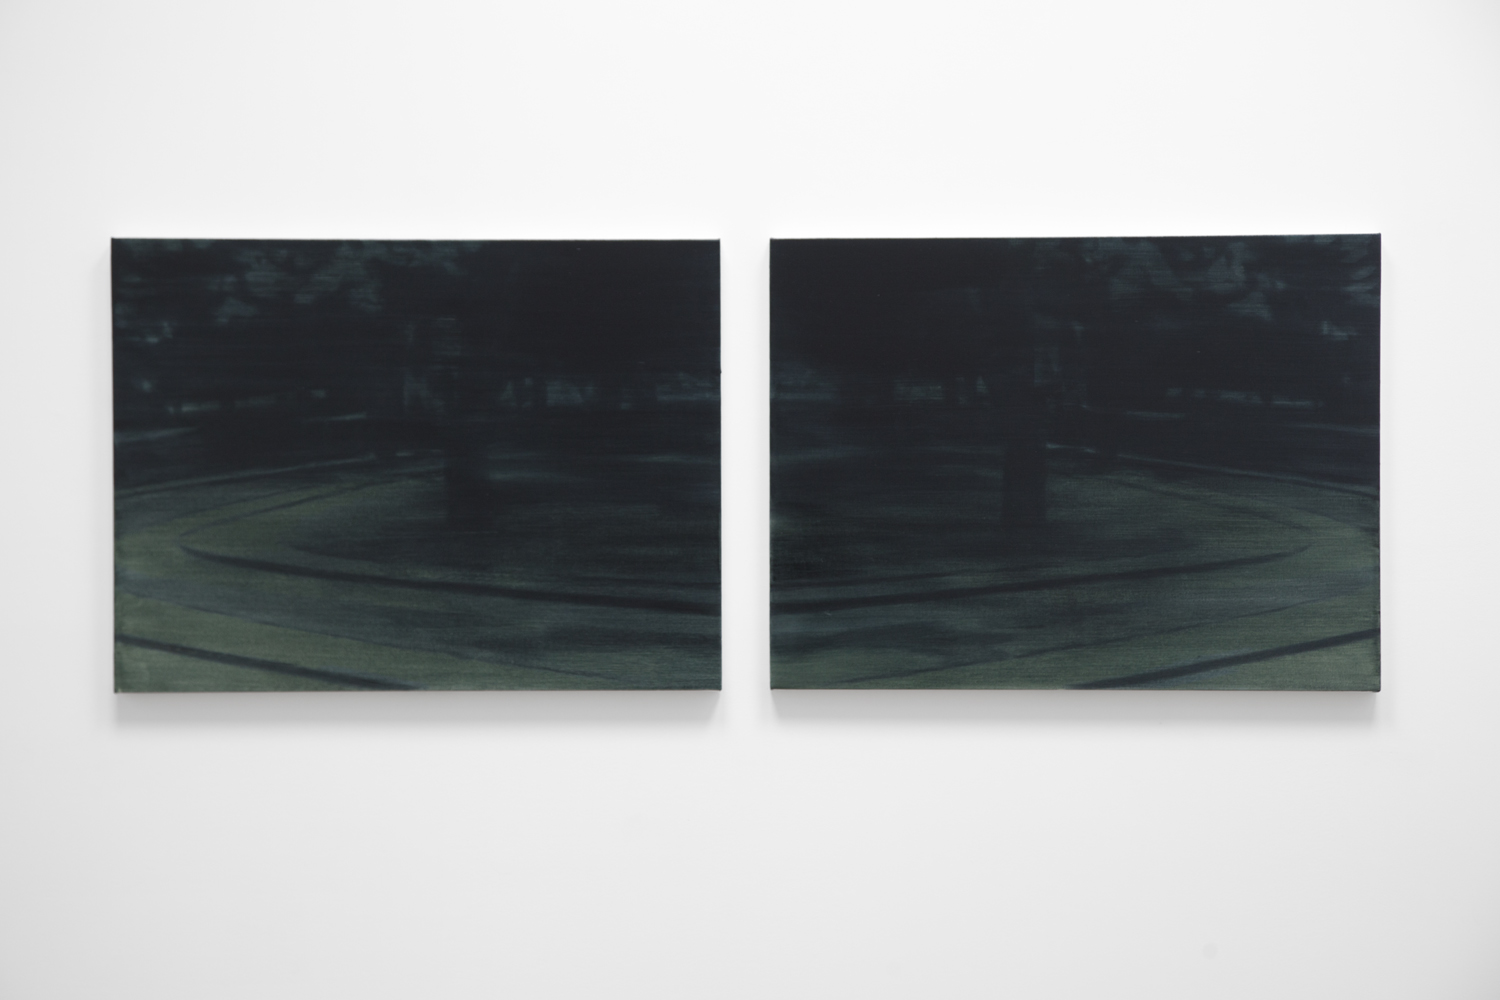 Roundabout (large dark mirror)  2018 diptych; oil on canvas on panel 30 x 40 inches each